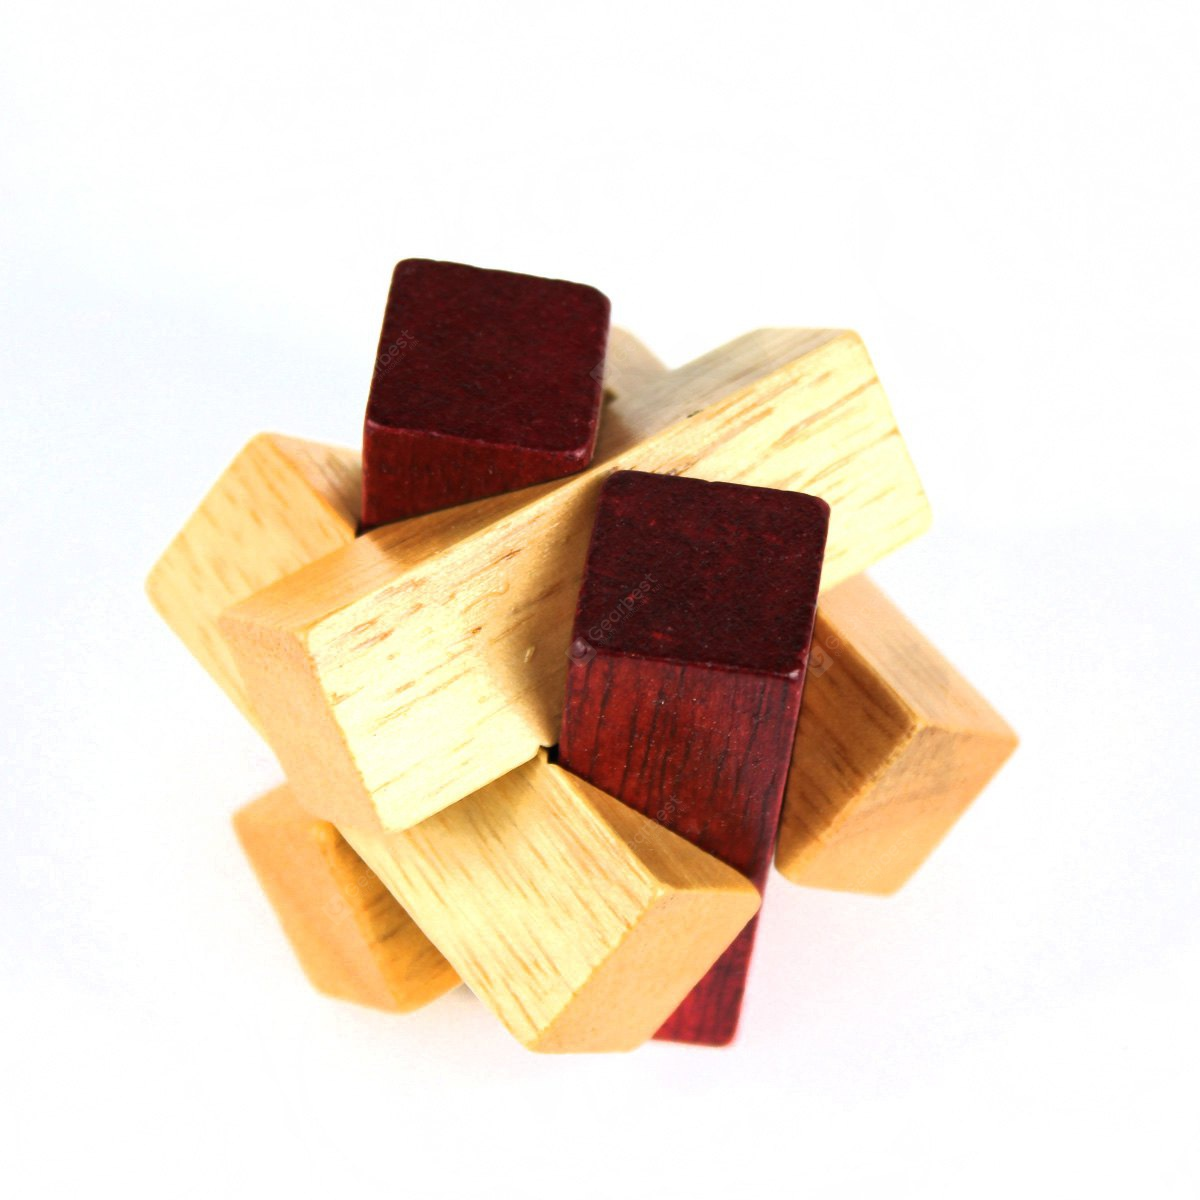 Puzzling Unlock Three-dimensional Wooden Toy